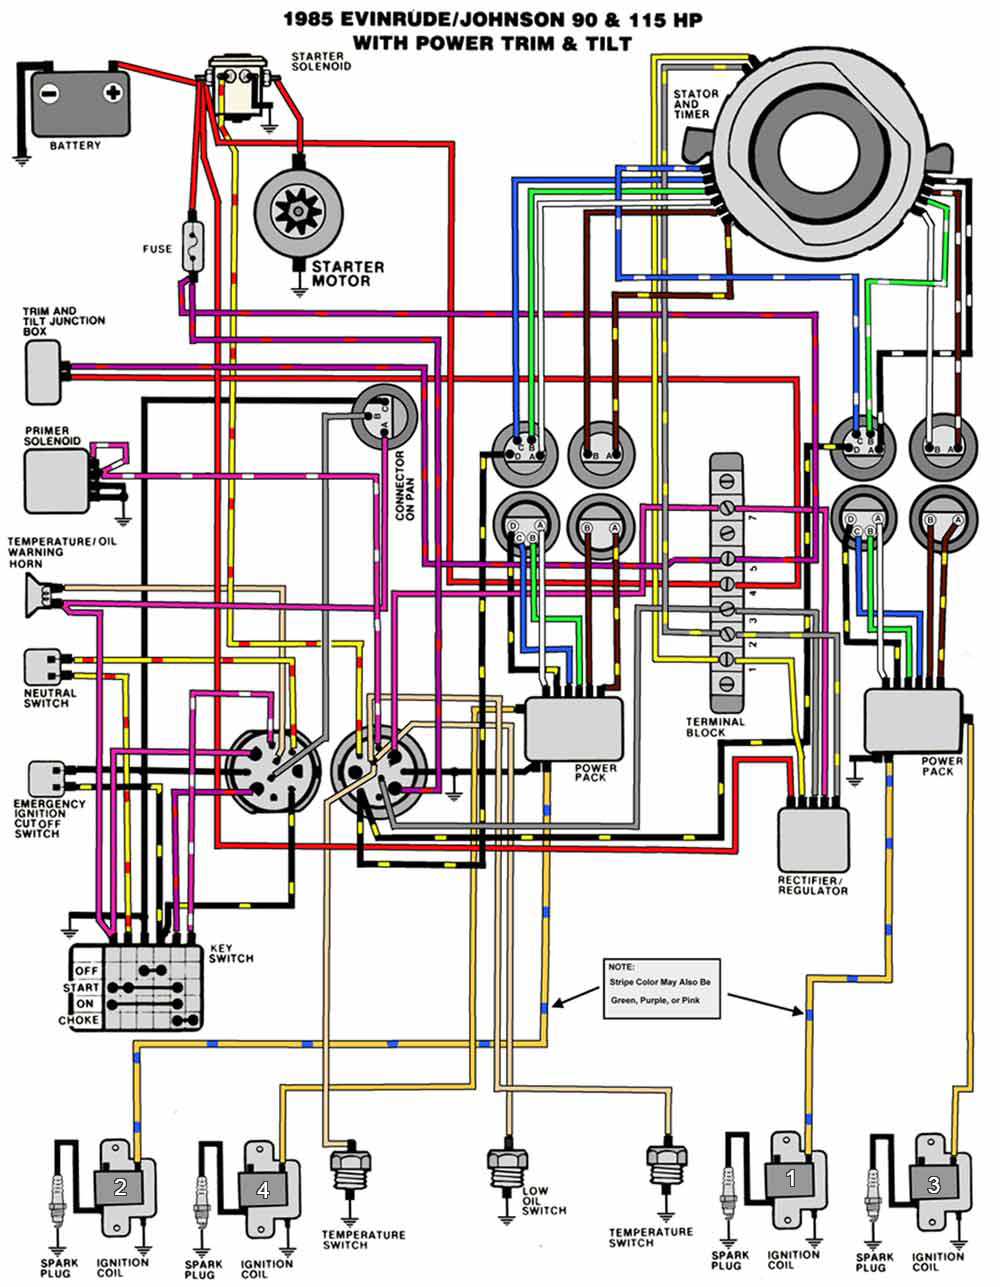 1985_90_115TnT mercury trim gauge wiring diagram trim motor wiring diagram 3-Way Switch Wiring Diagram Variations at bayanpartner.co